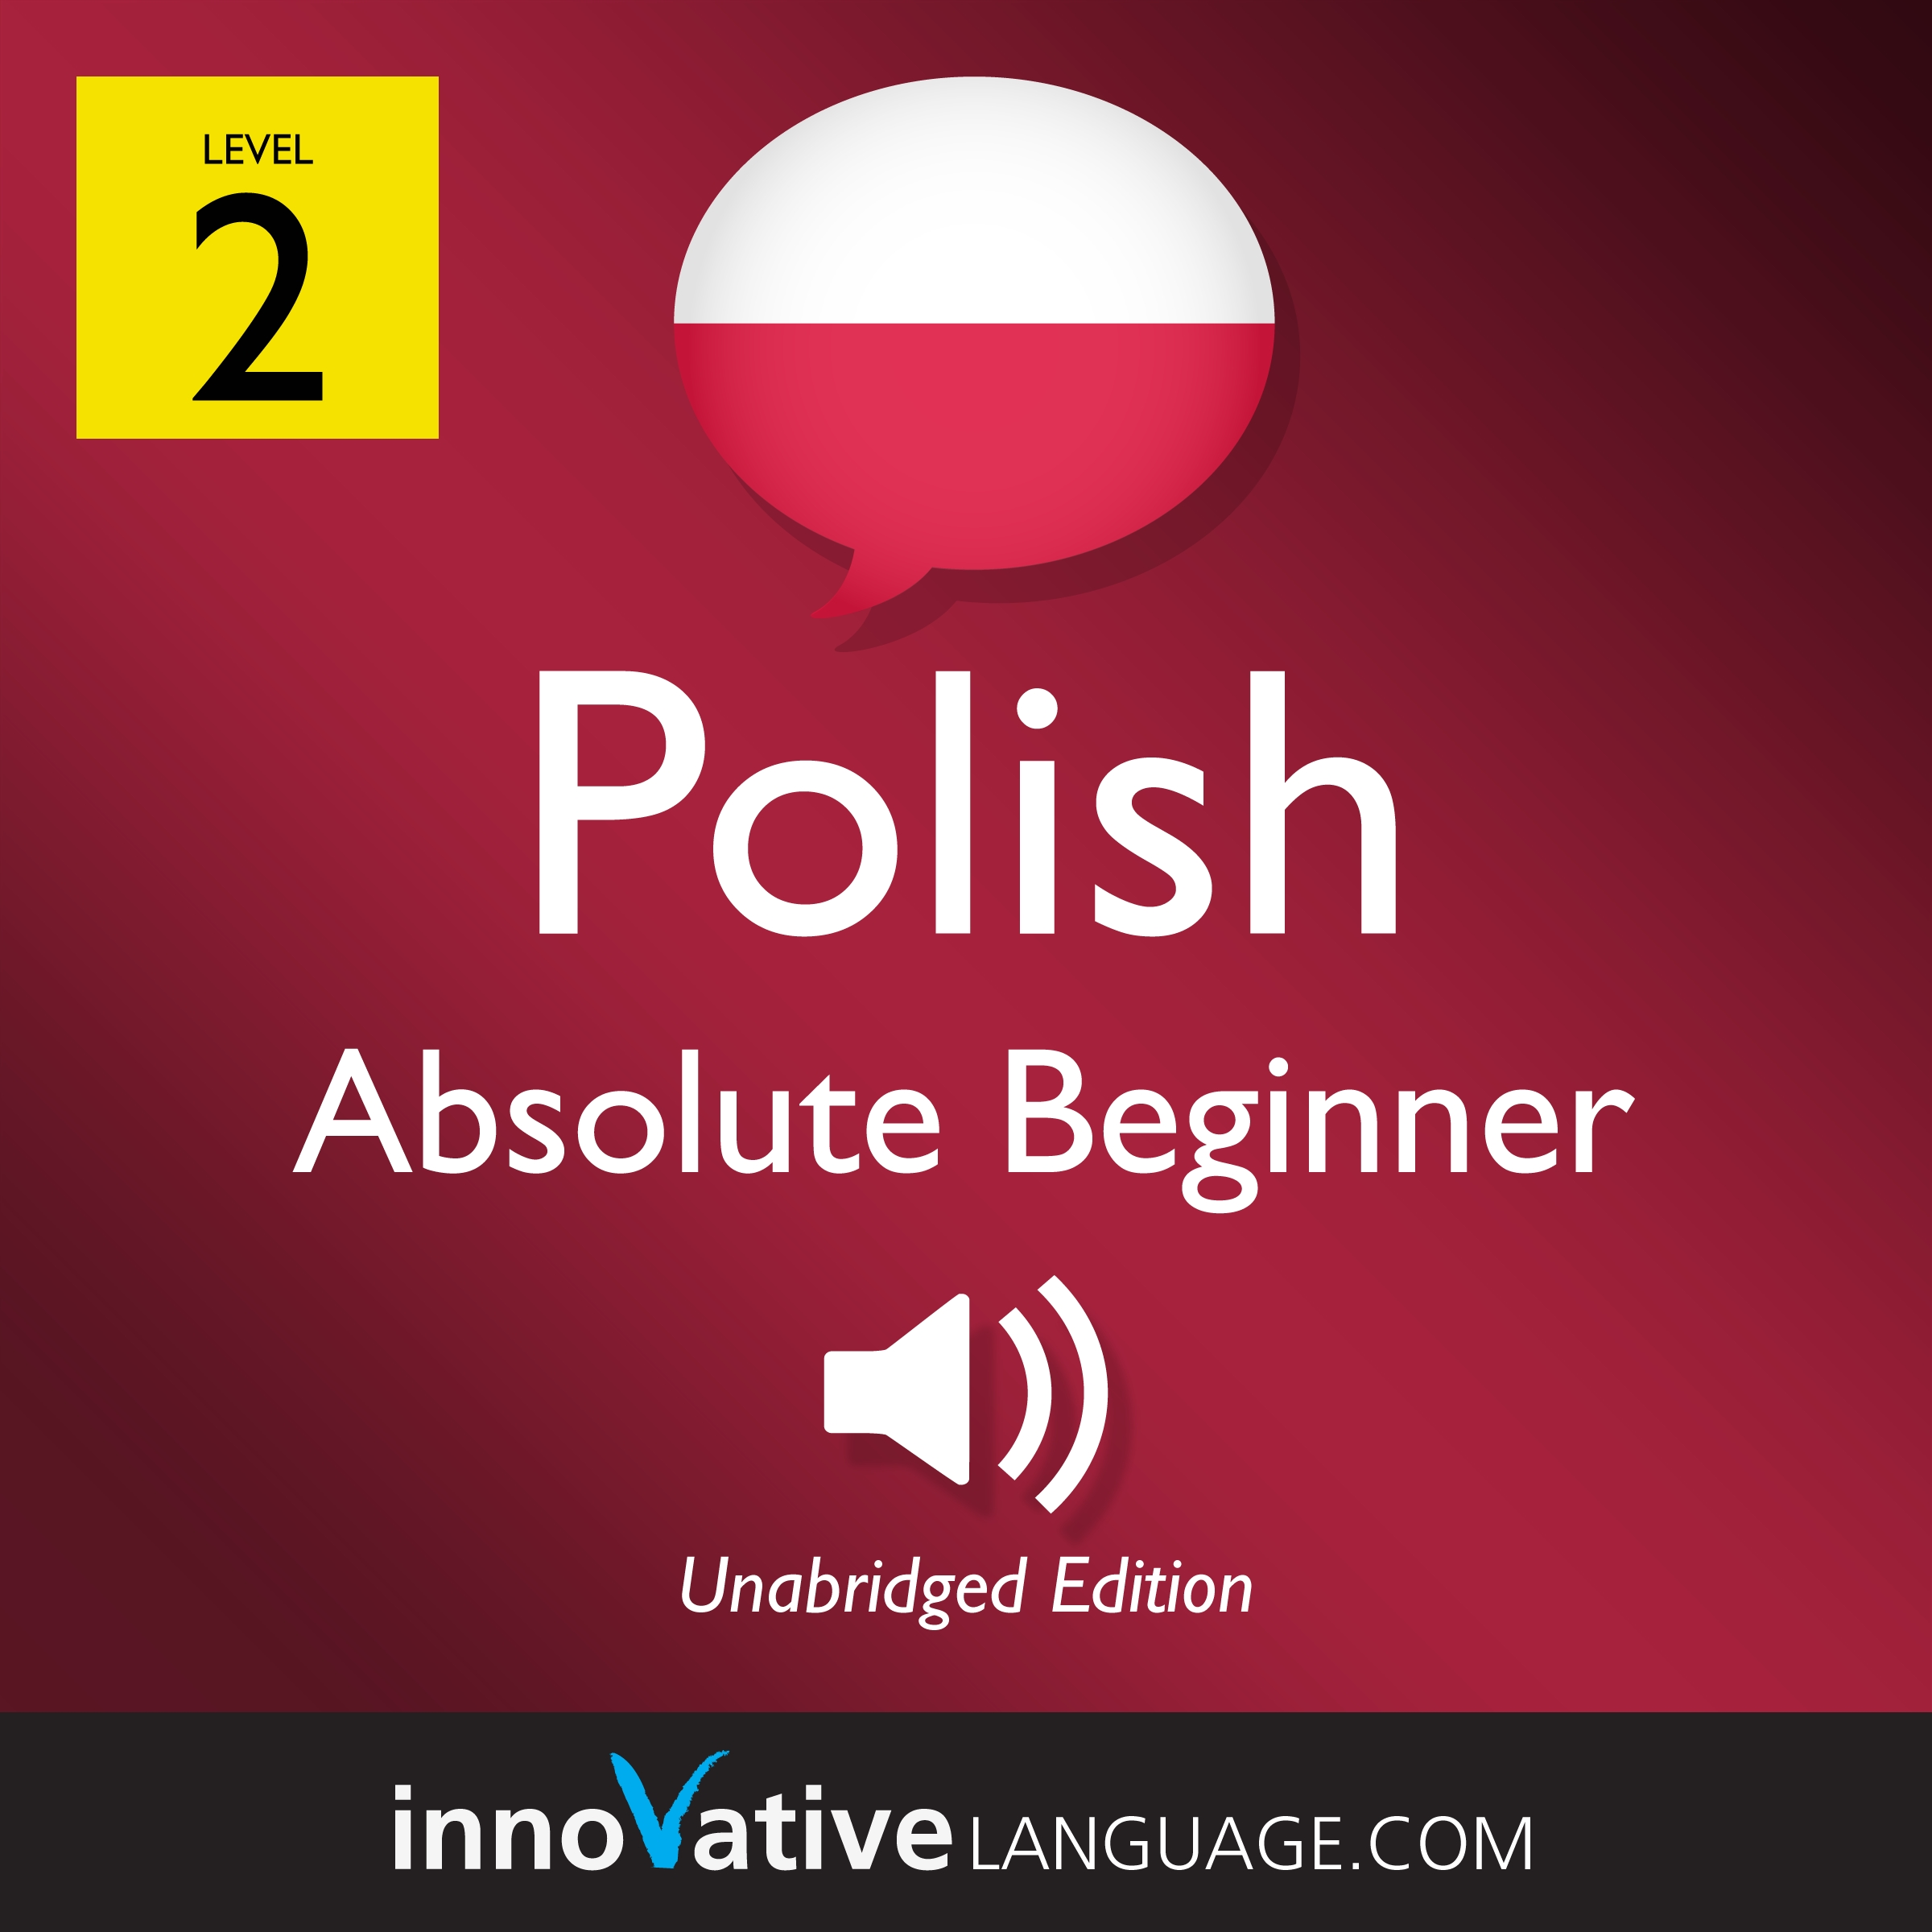 [Audiobook] Learn Polish - Level 2: Absolute Beginner Polish, Volume 1